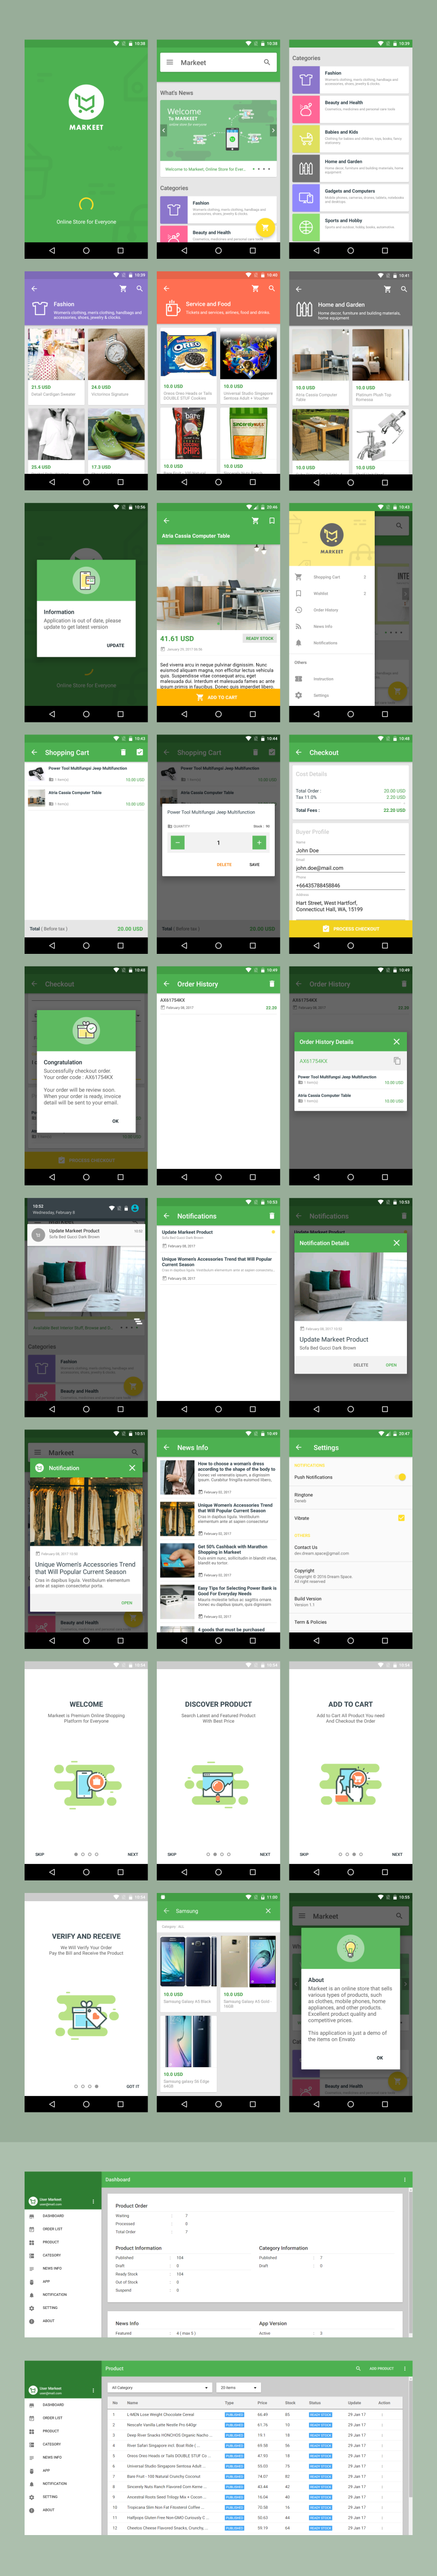 Markeet - Android Online Store 3.0 - 7